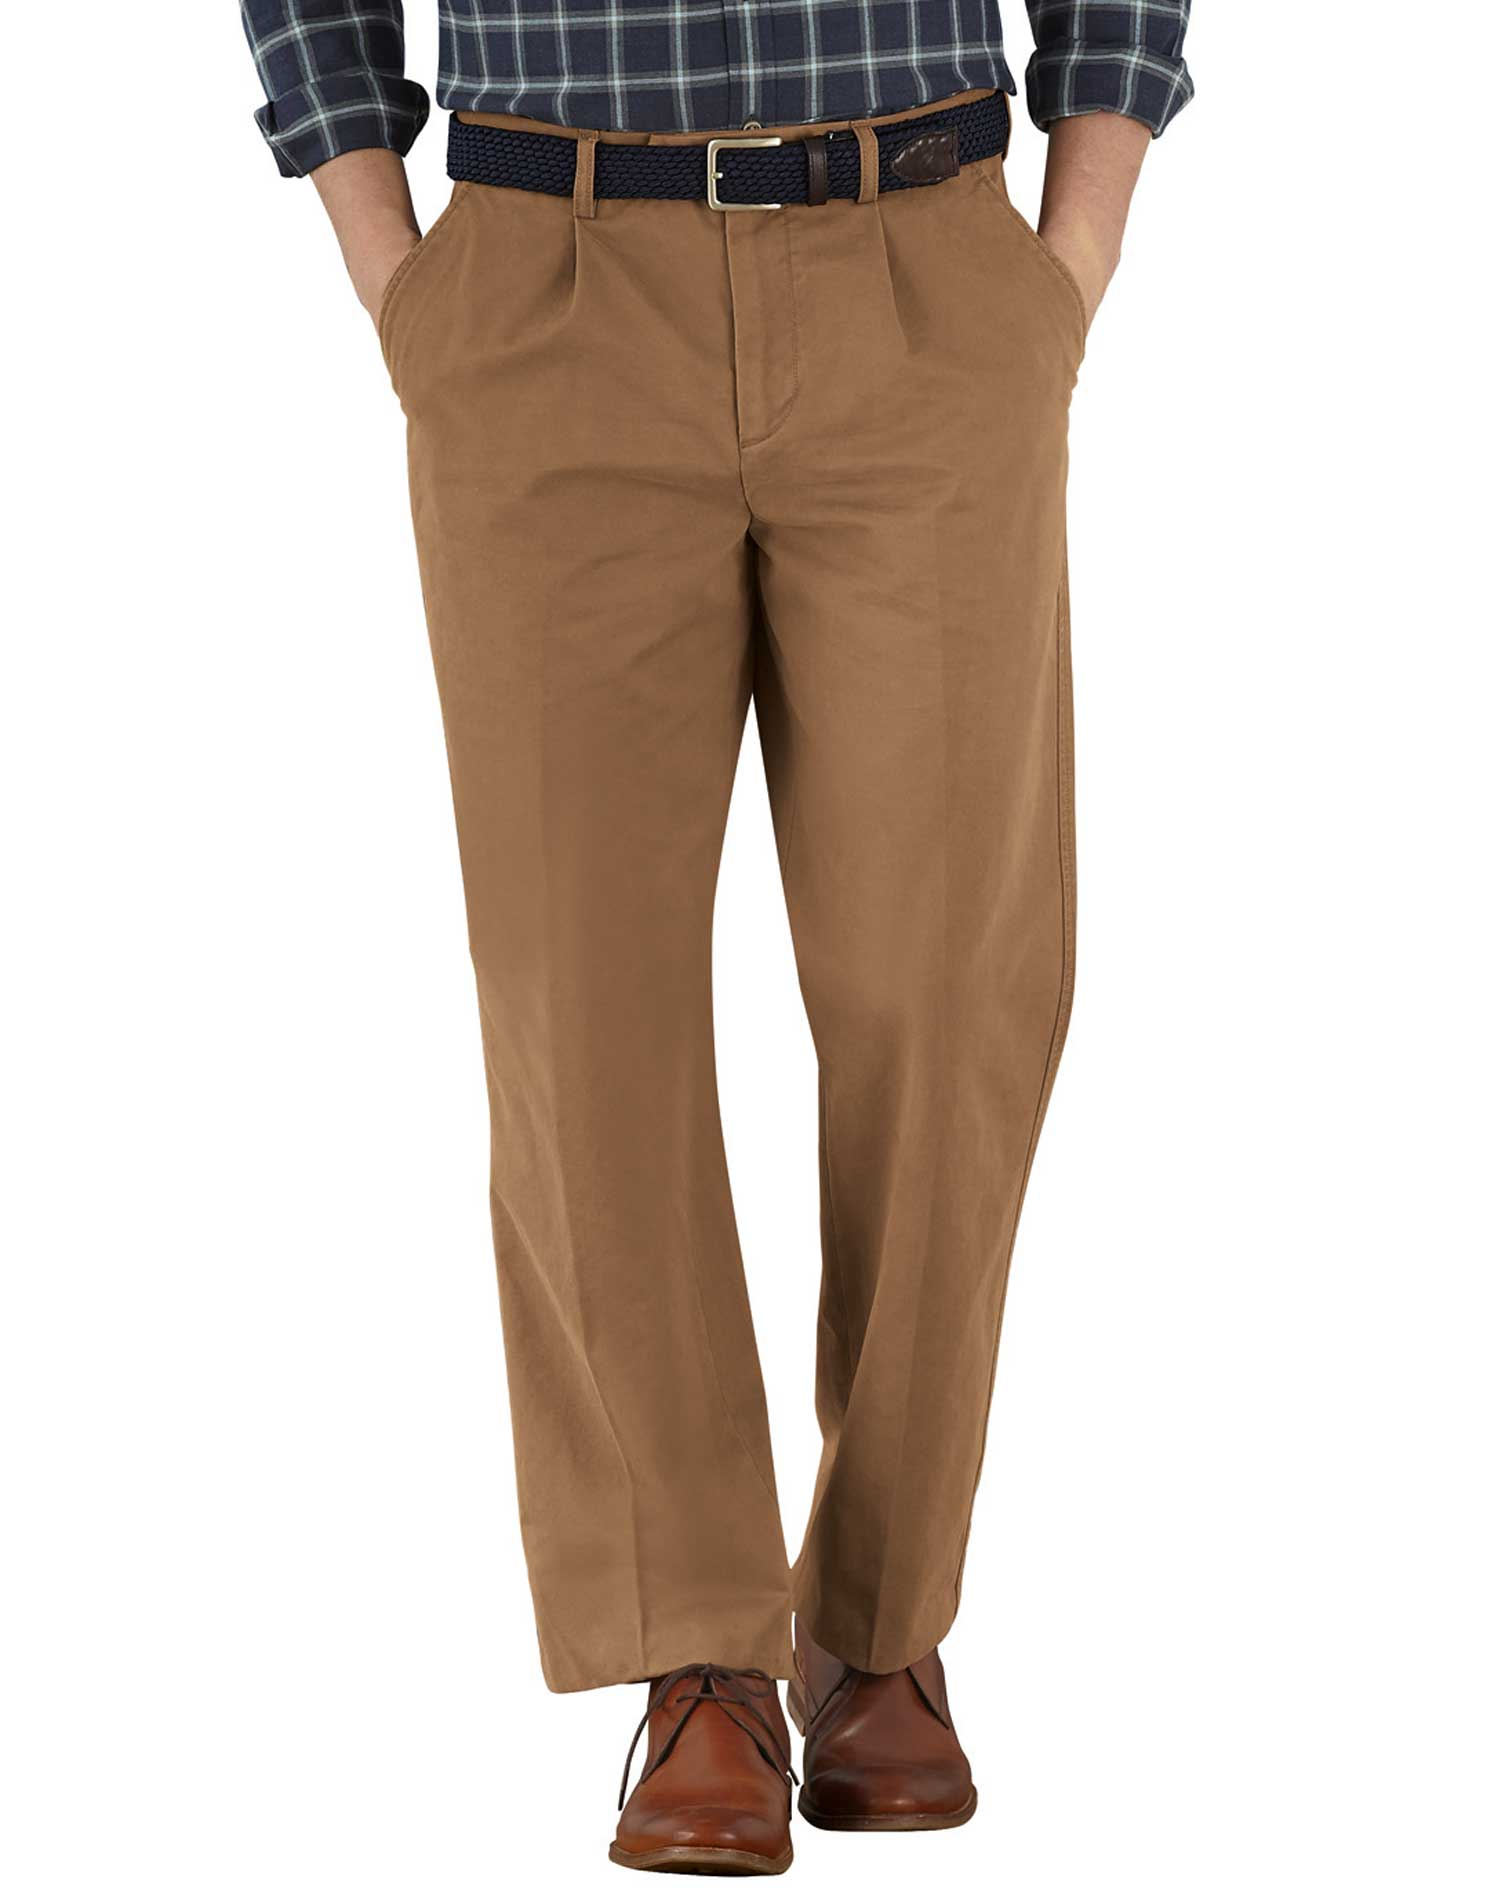 Camel Classic Fit Single Pleat Cotton Chino Trousers Size W42 L34 by Charles Tyrwhitt